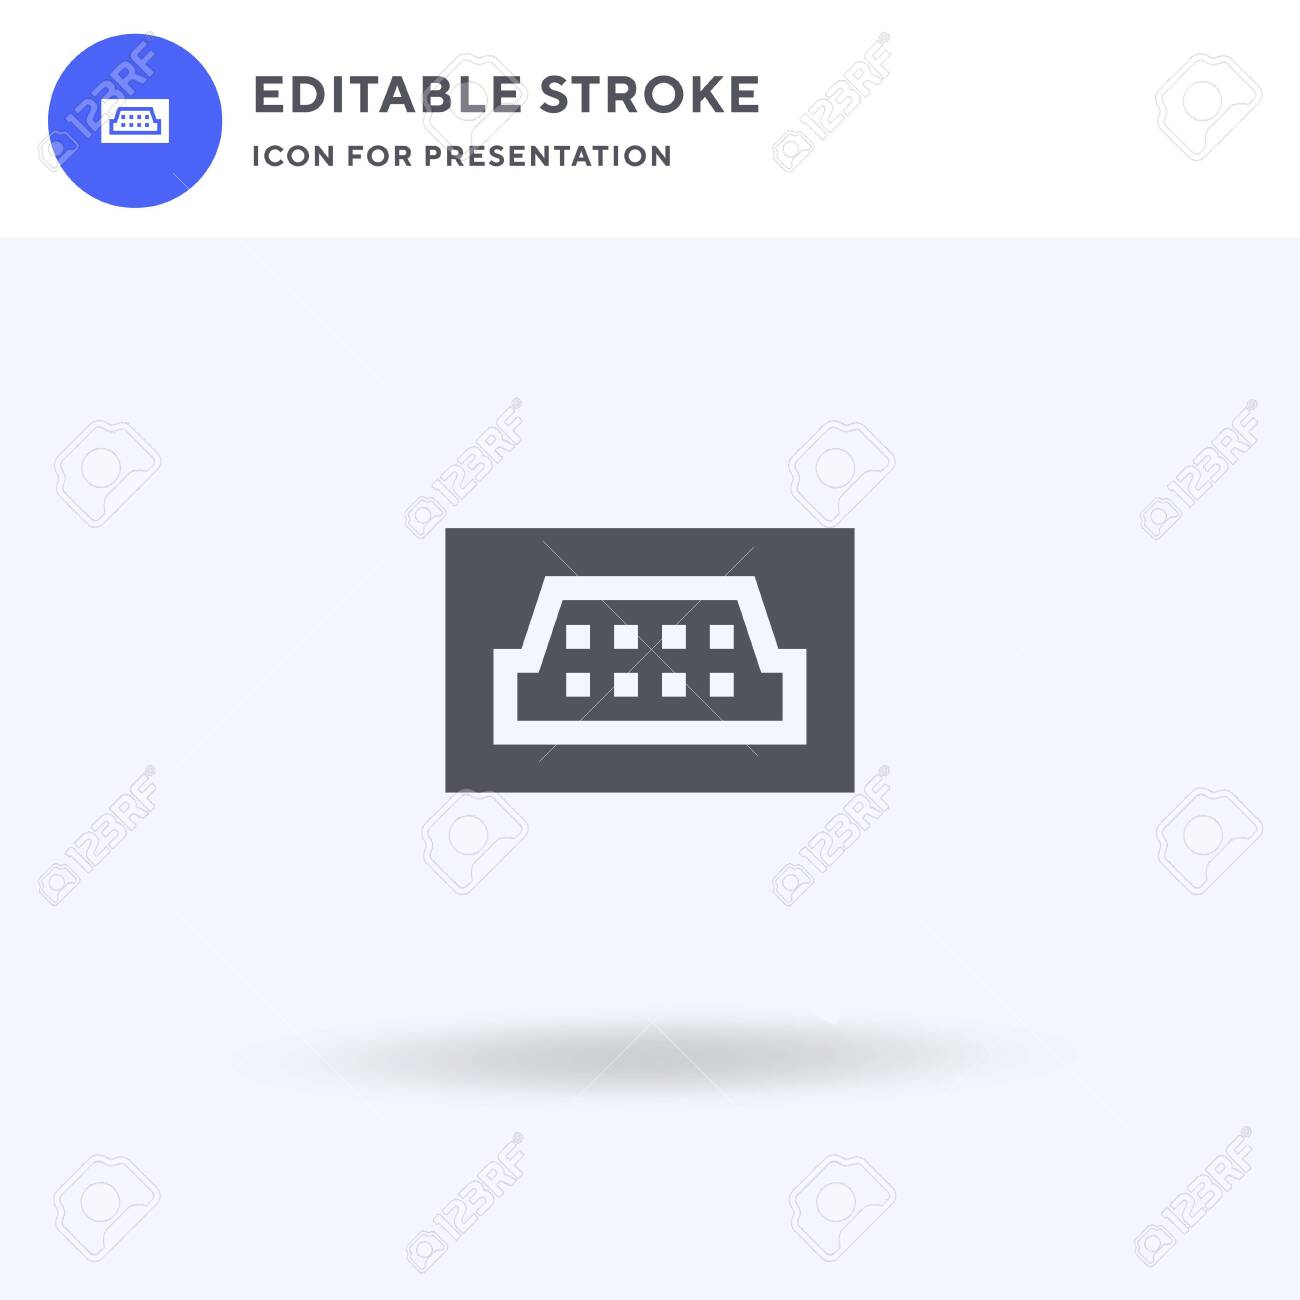 hdmi port icon vector filled flat sign solid pictogram isolated royalty free cliparts vectors and stock illustration image 152012706 hdmi port icon vector filled flat sign solid pictogram isolated